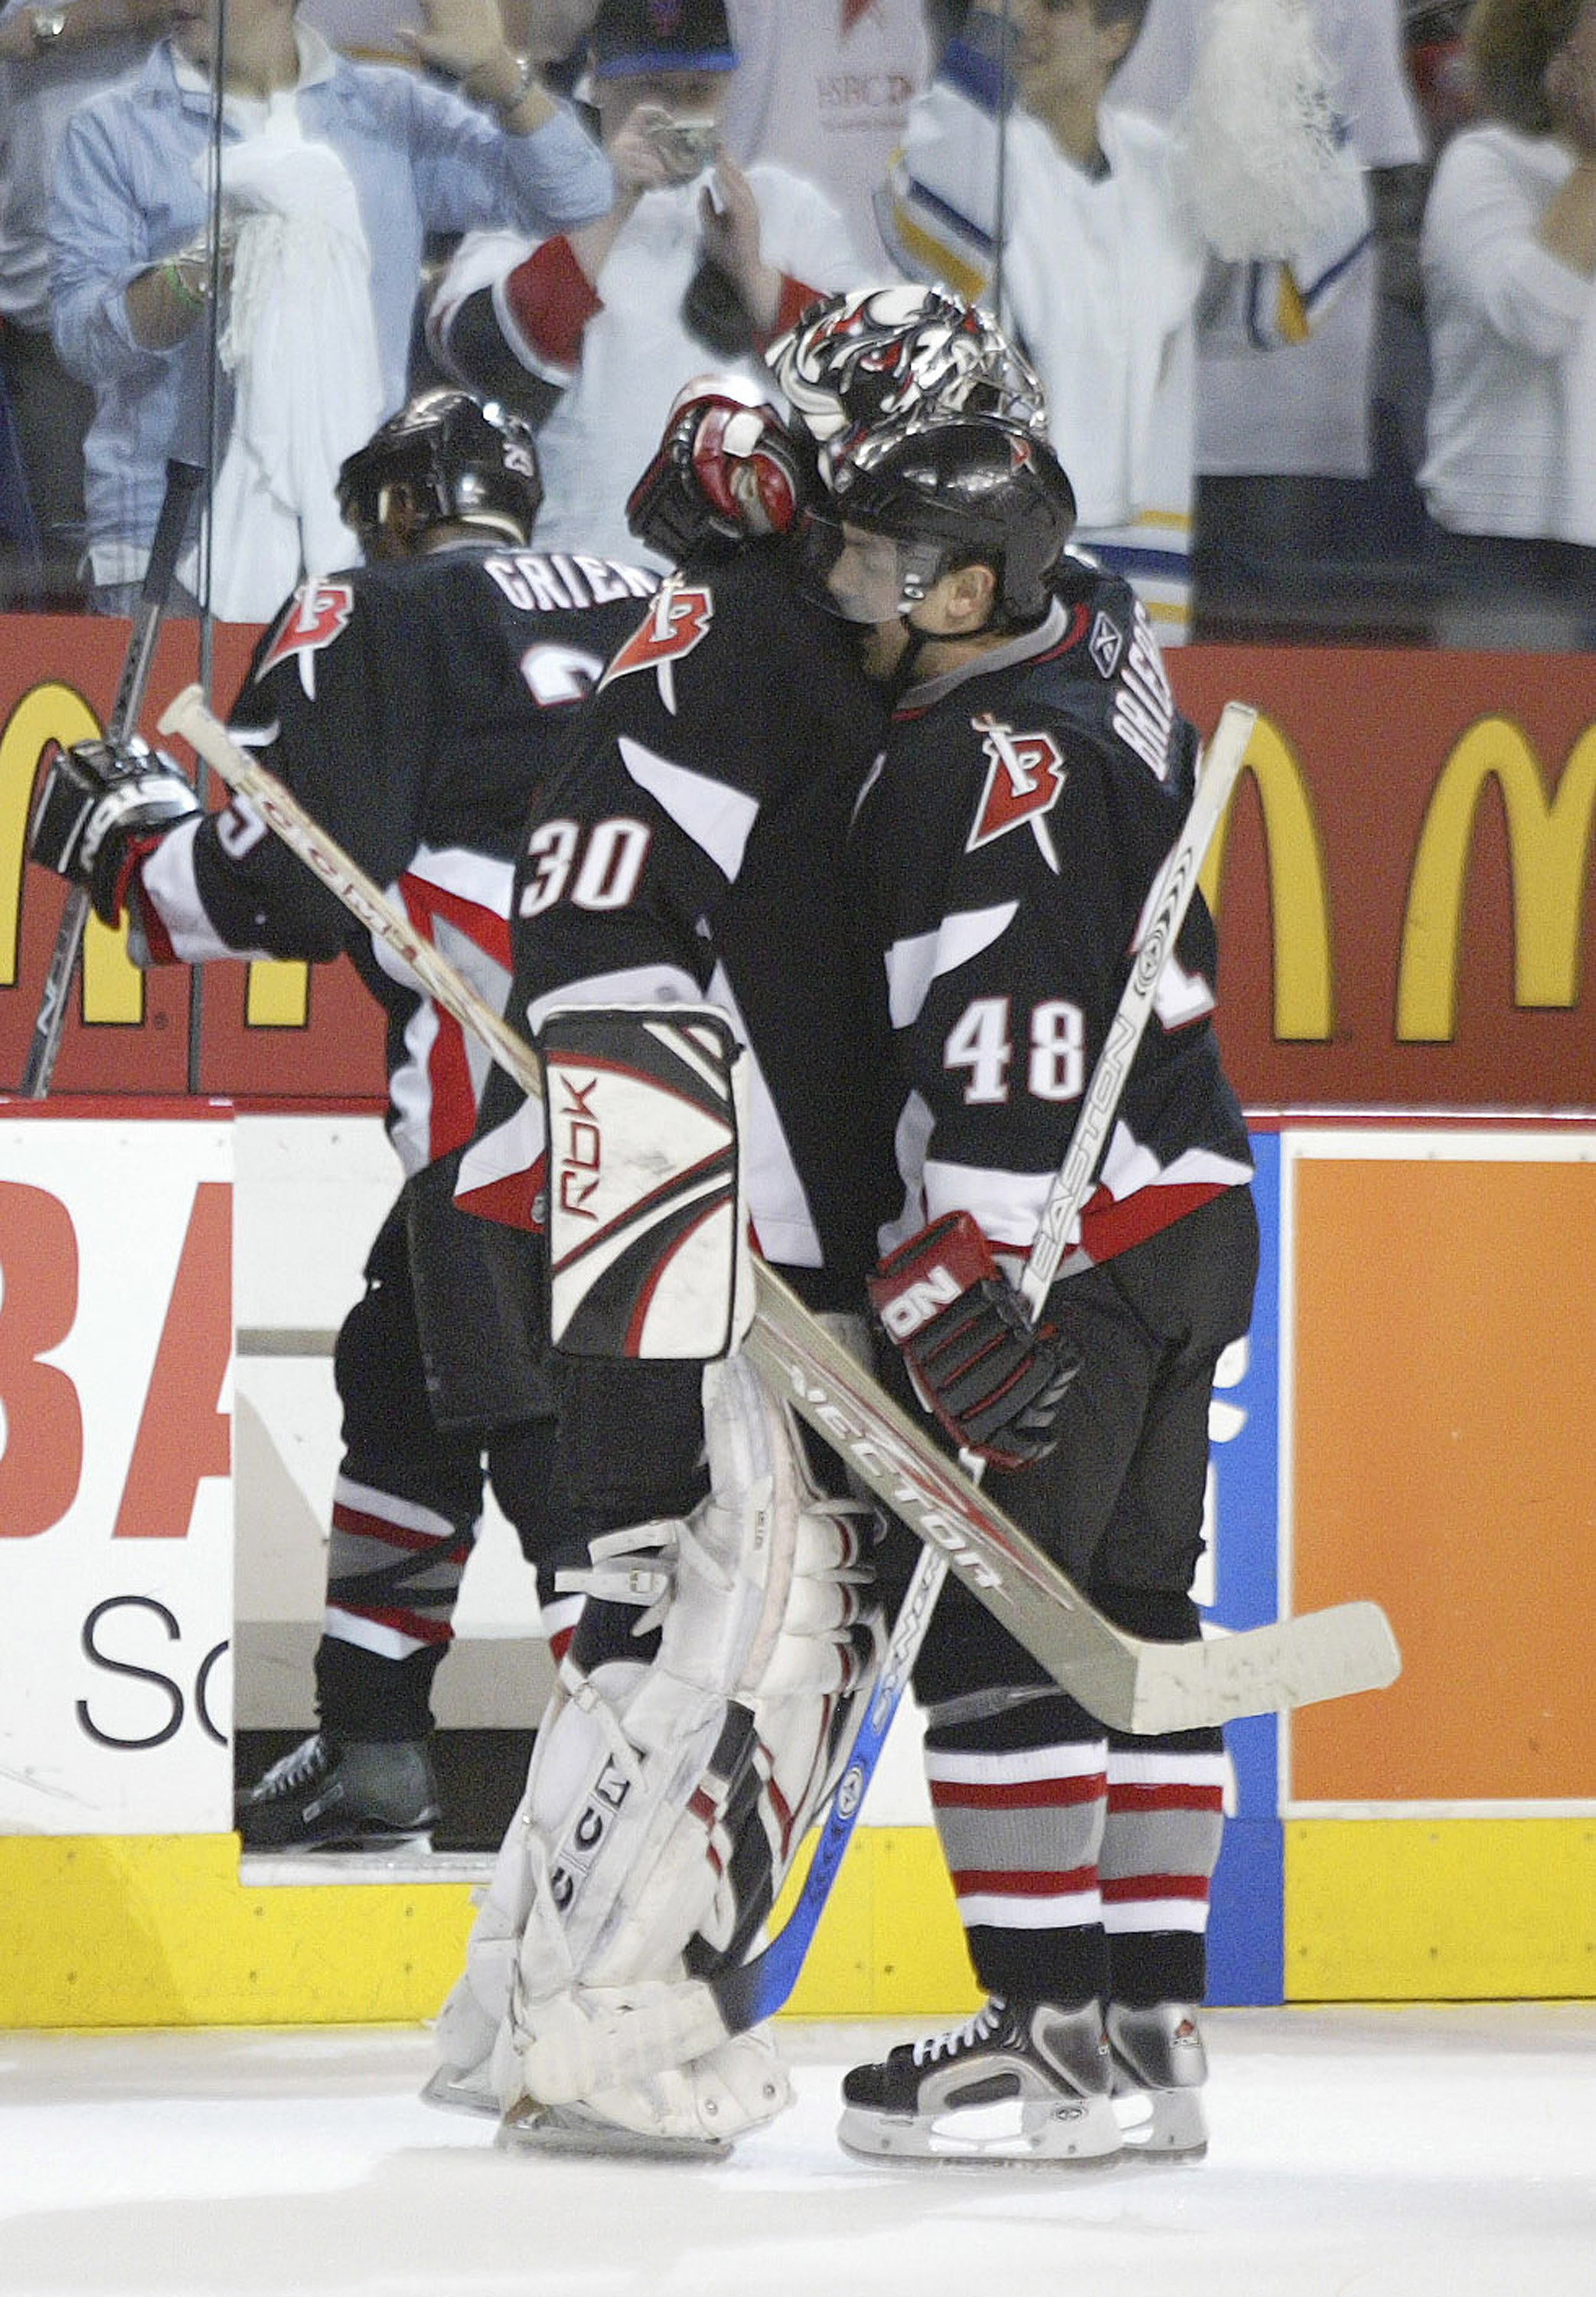 BUFFALO, NY- APRIL 22: Daniel Briere #48 of the Buffalo Sabres hugs teammate Ryan Miller #30 after scoring the game-winning goal in the second overtime period against the Philadelphia Flyers in game one of the Eastern Conference Quarterfinals during the 2006 NHL Playoffs on April 22, 2006 at HSBC Arena in Buffalo, New York. The Sabres defeated the Flyers 3-2 in double overtime. (Photo by Rick Stewart/Getty Images)